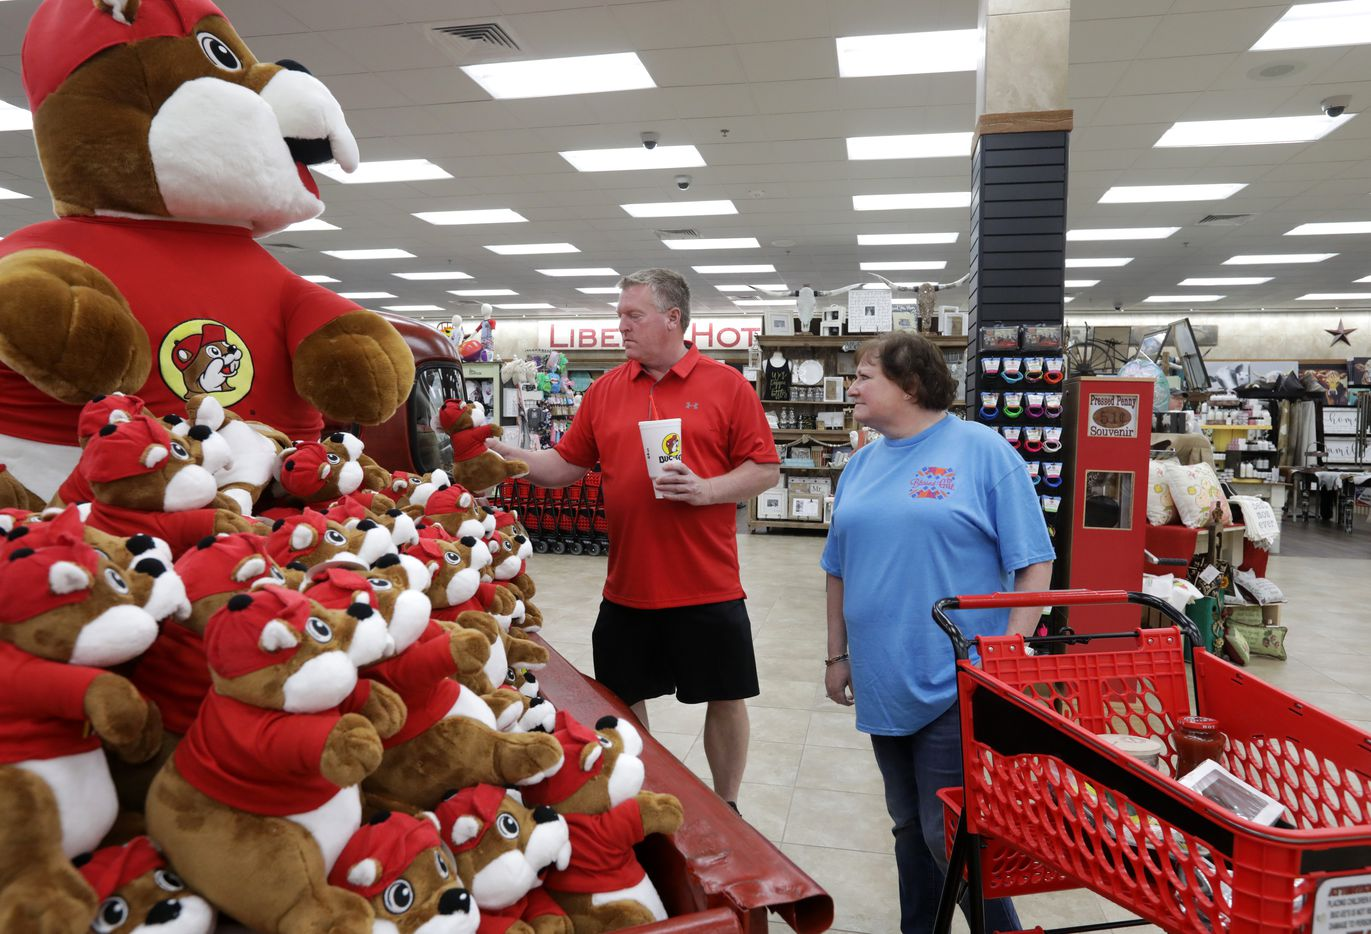 Randy Hayes, left, and Angie Hayes look at Buc-ee's beaver mascots while shoppinig at the new Buc-ee's in Melissa, TX, on Apr. 29, 2019.